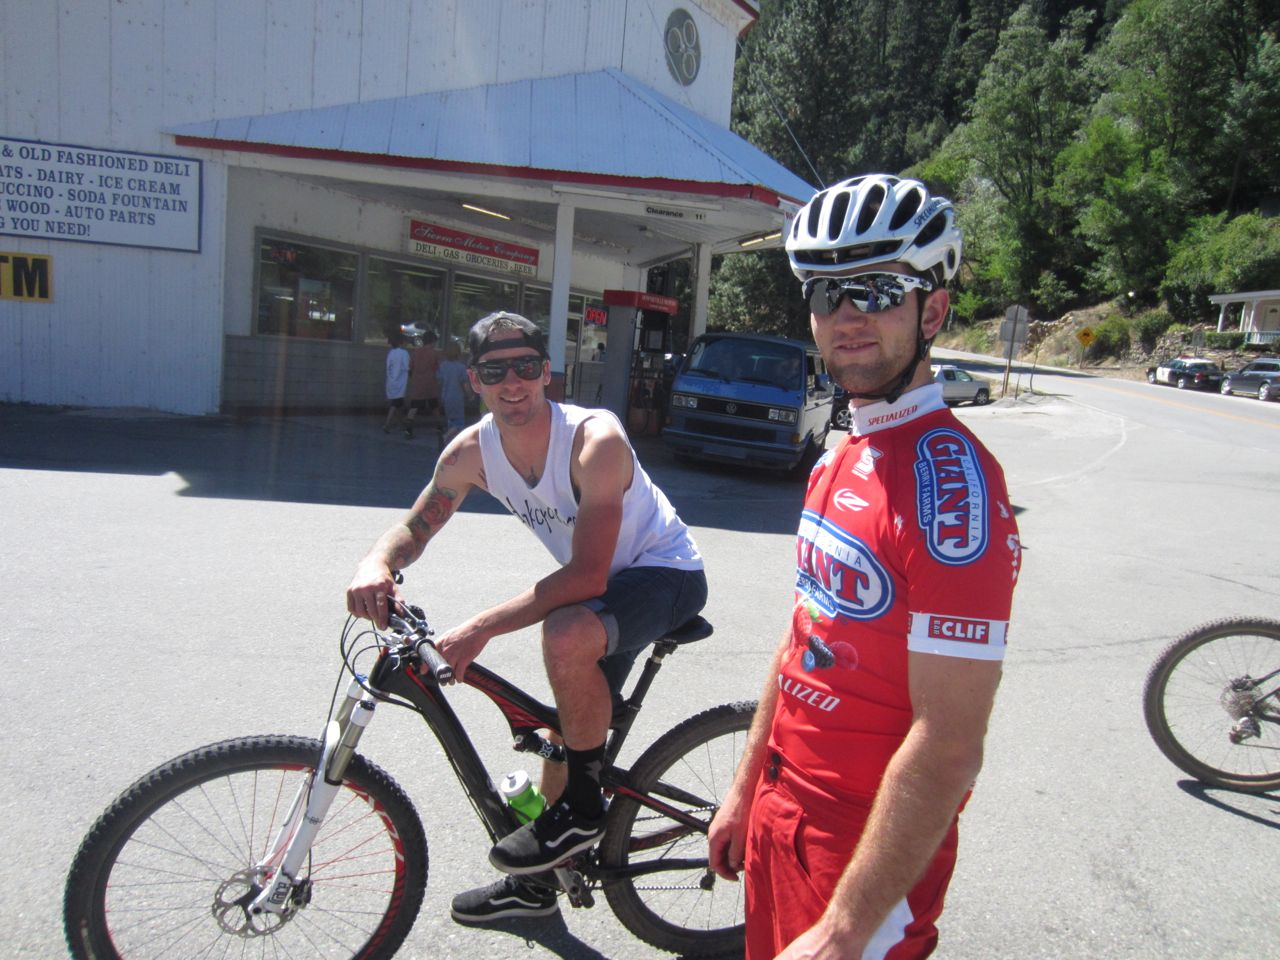 Tobin Ortenblad and John Hauer chillin' in the parking lot.